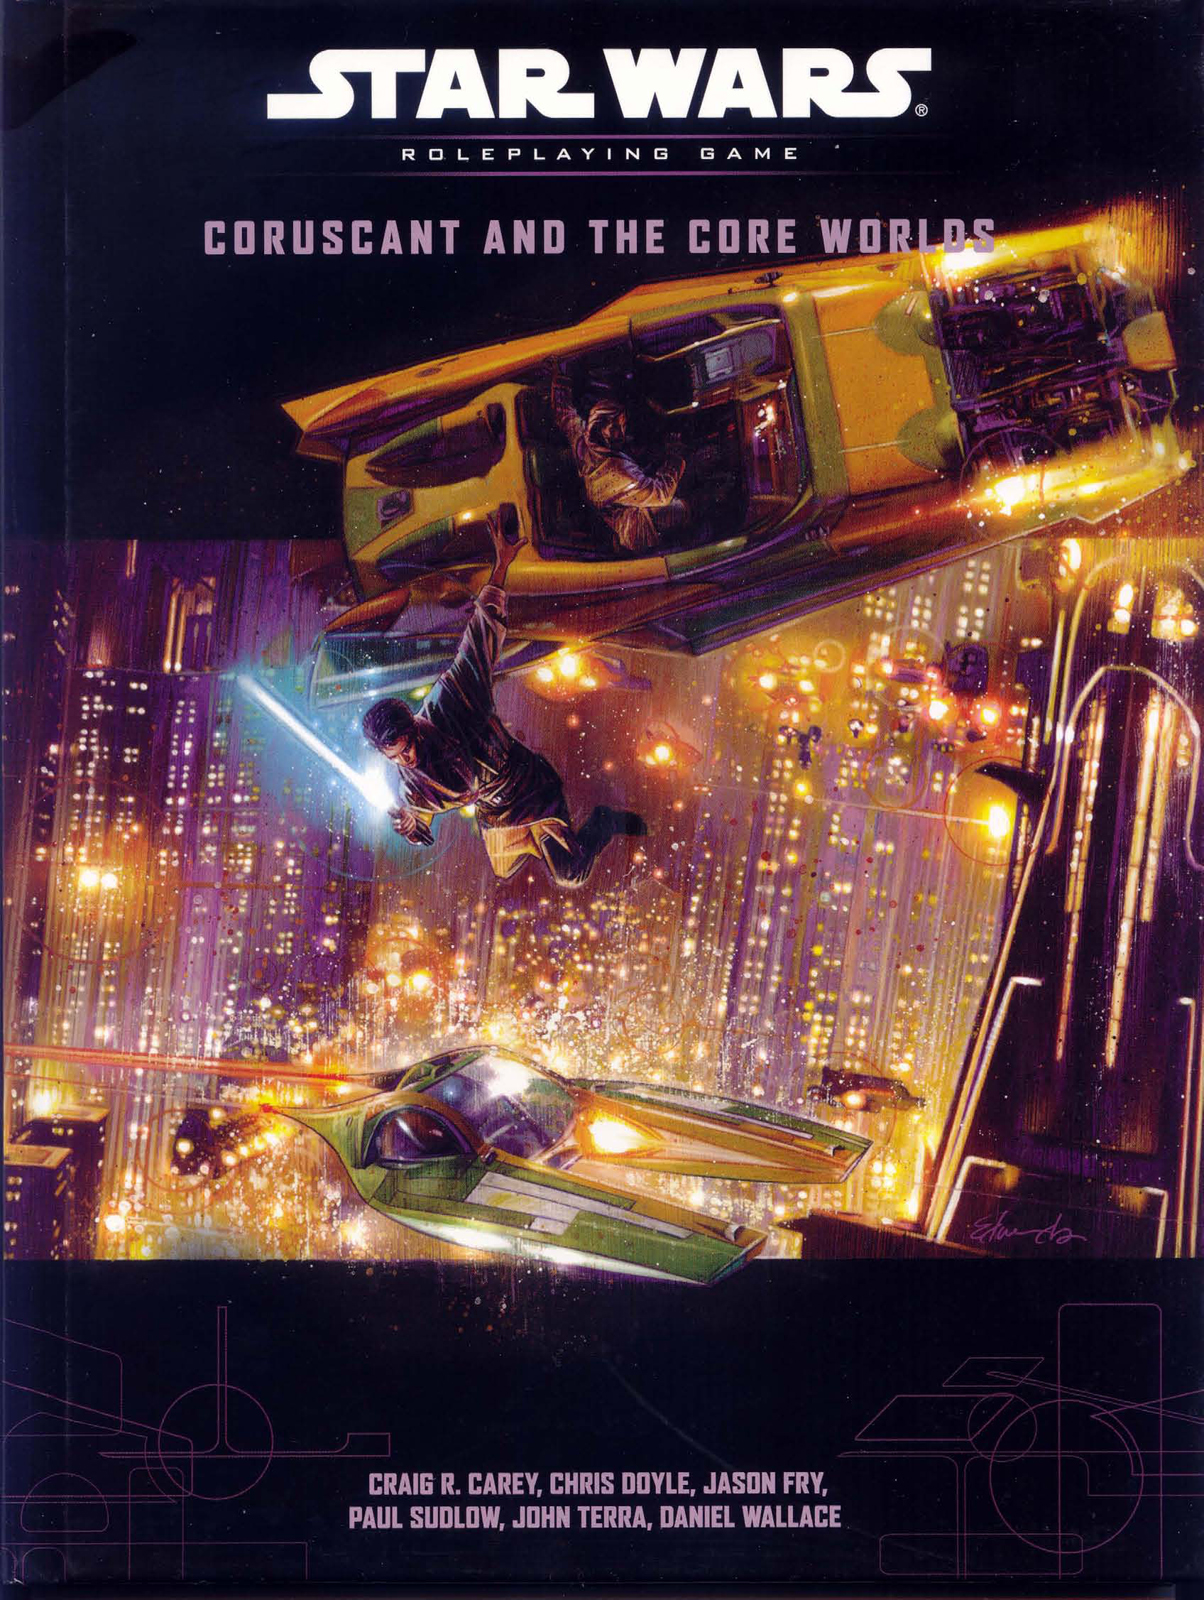 Star Wars: Coruscant and the Core Worlds